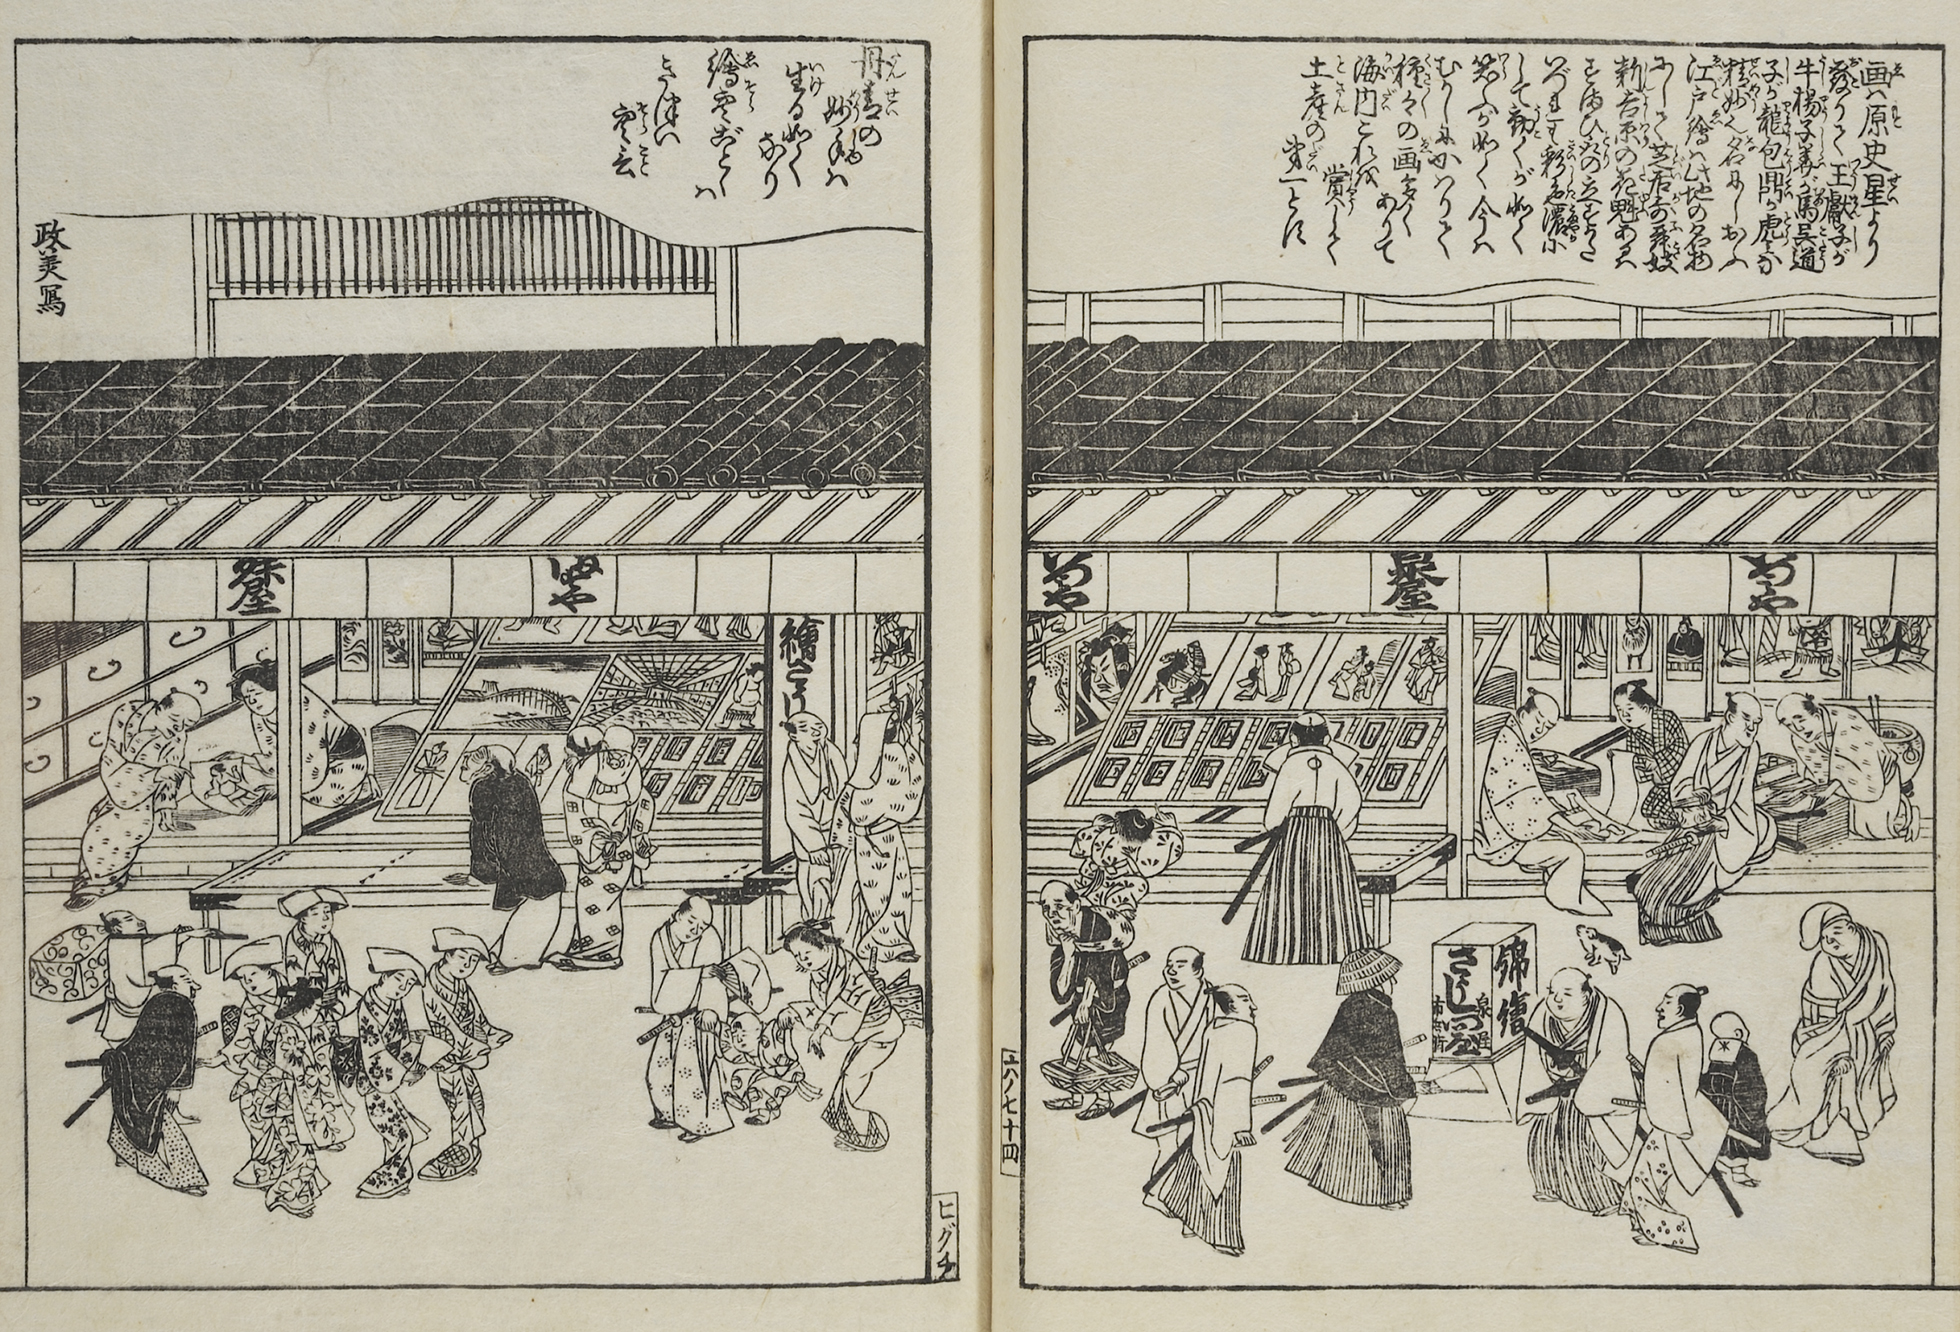 A page from a woodblock illustrated book showing print sellers along the Tokaido Highway. People stroll in the street and look at the prints for sale.